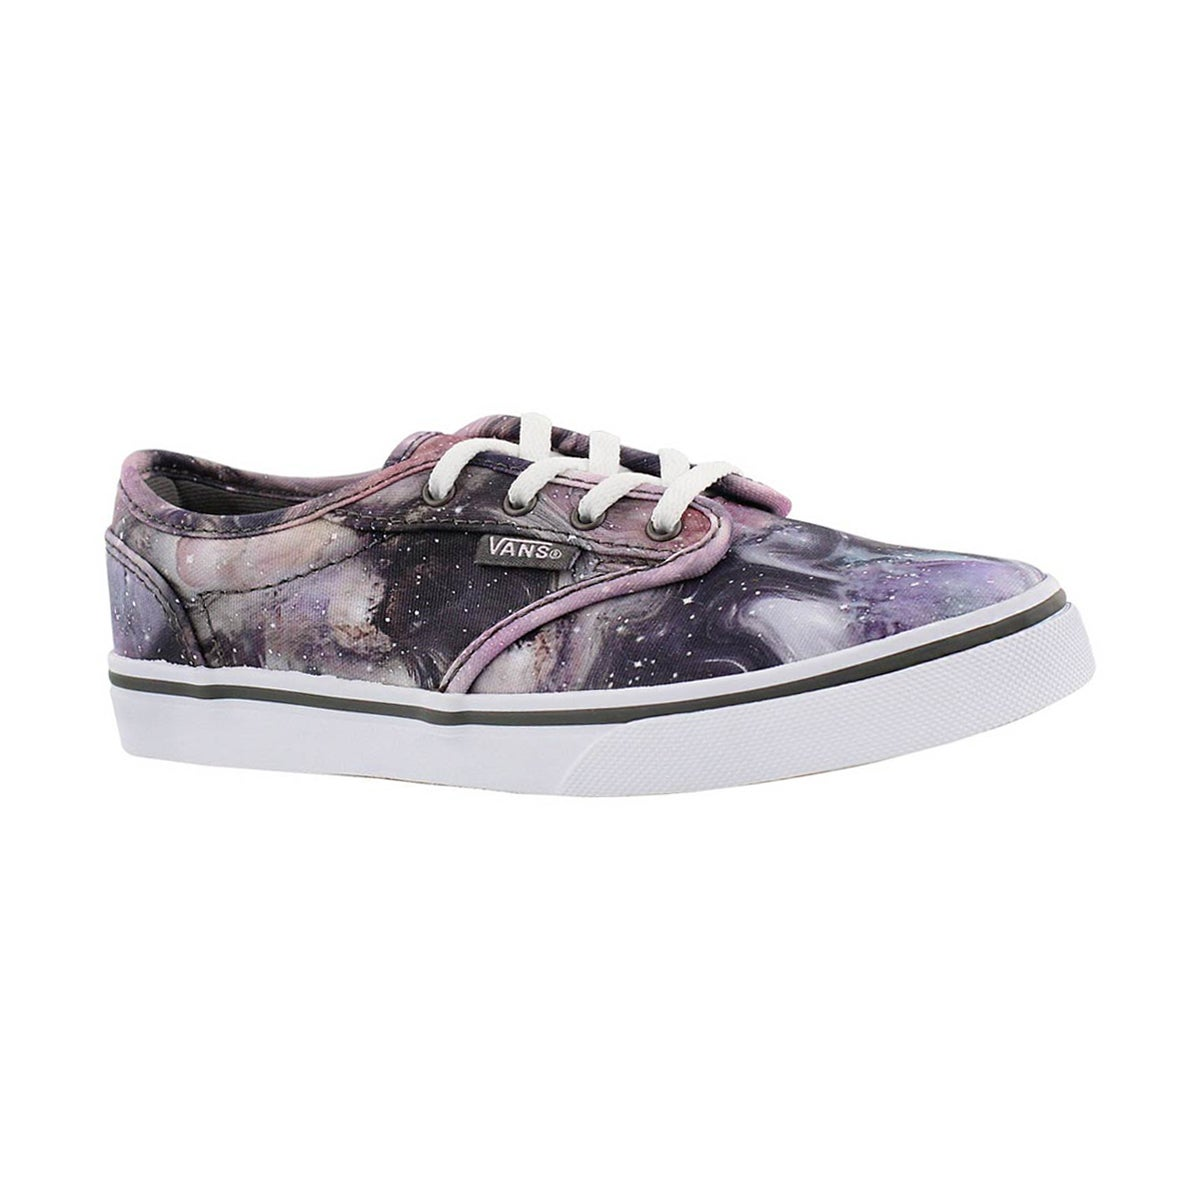 Girls' ATWOOD LOW galaxy lace up sneakers